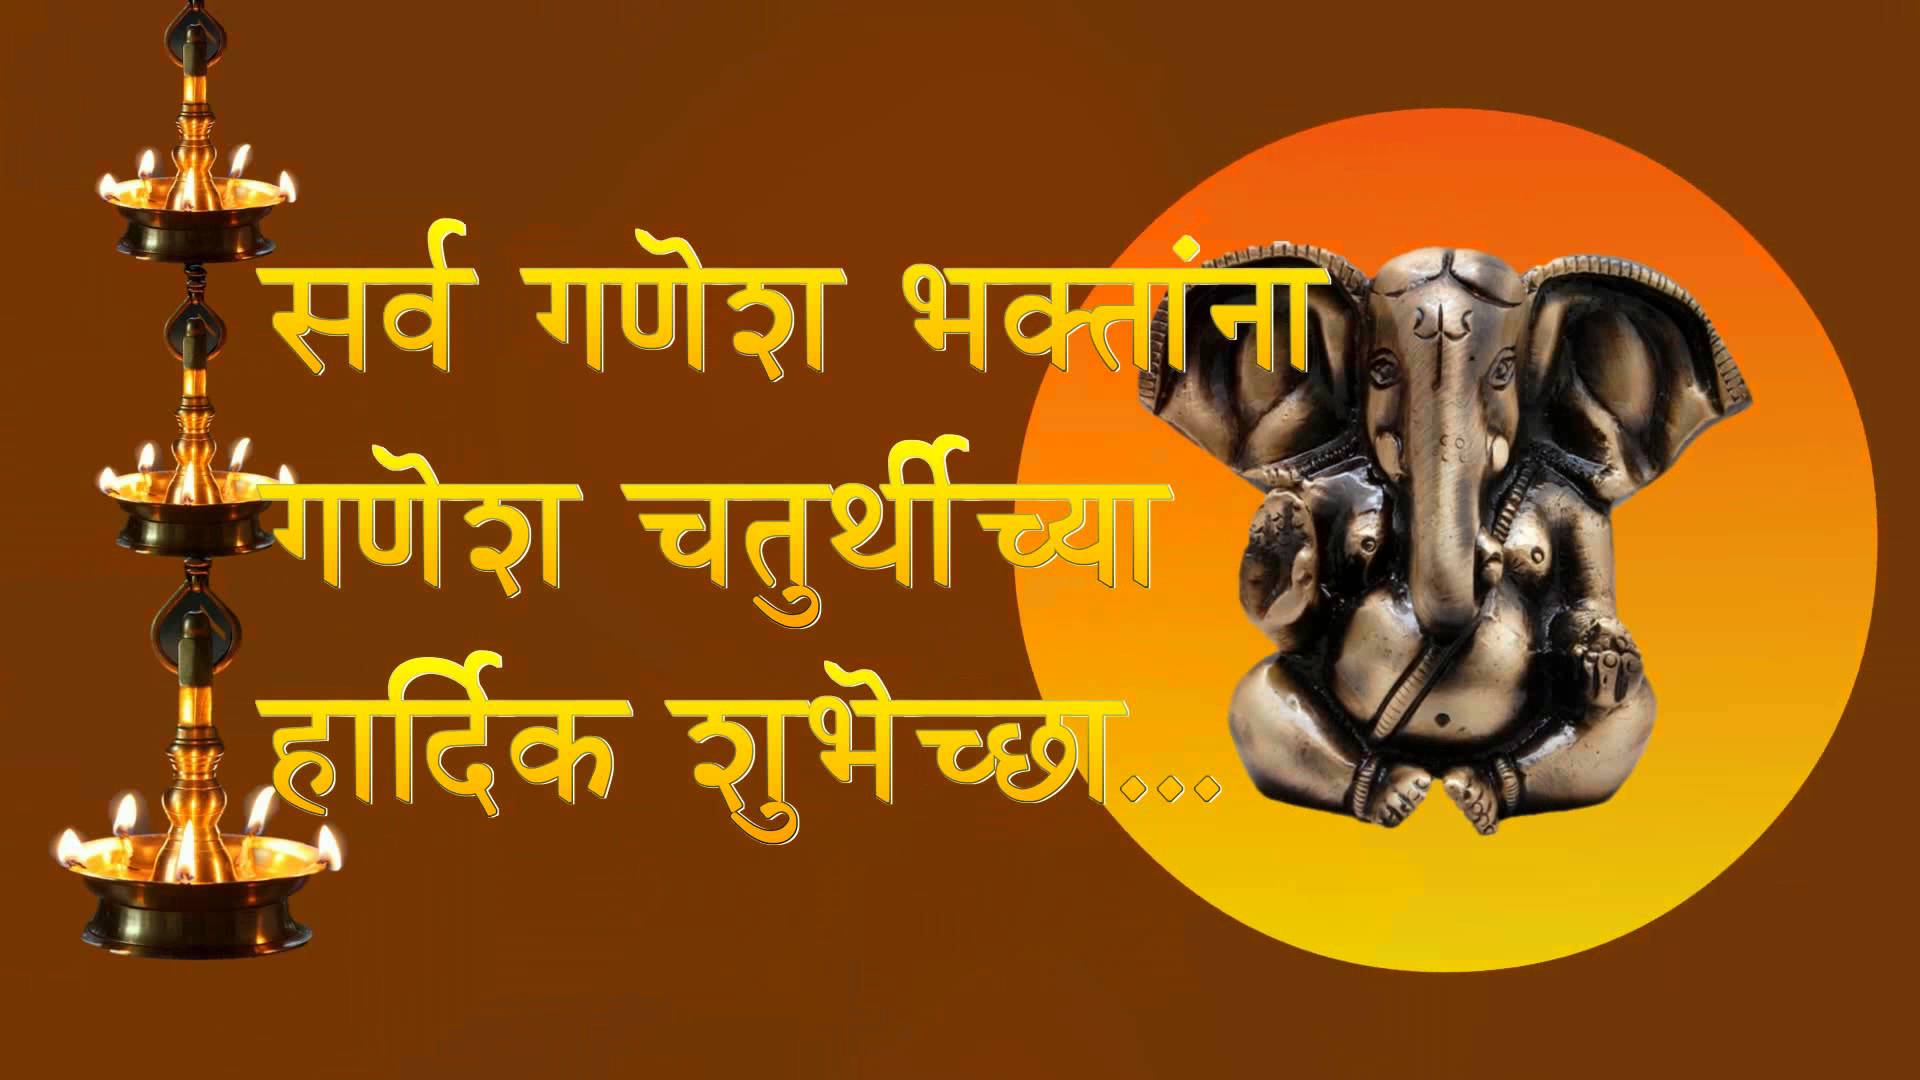 ganesh chaturthi 2016 wishes in marathi